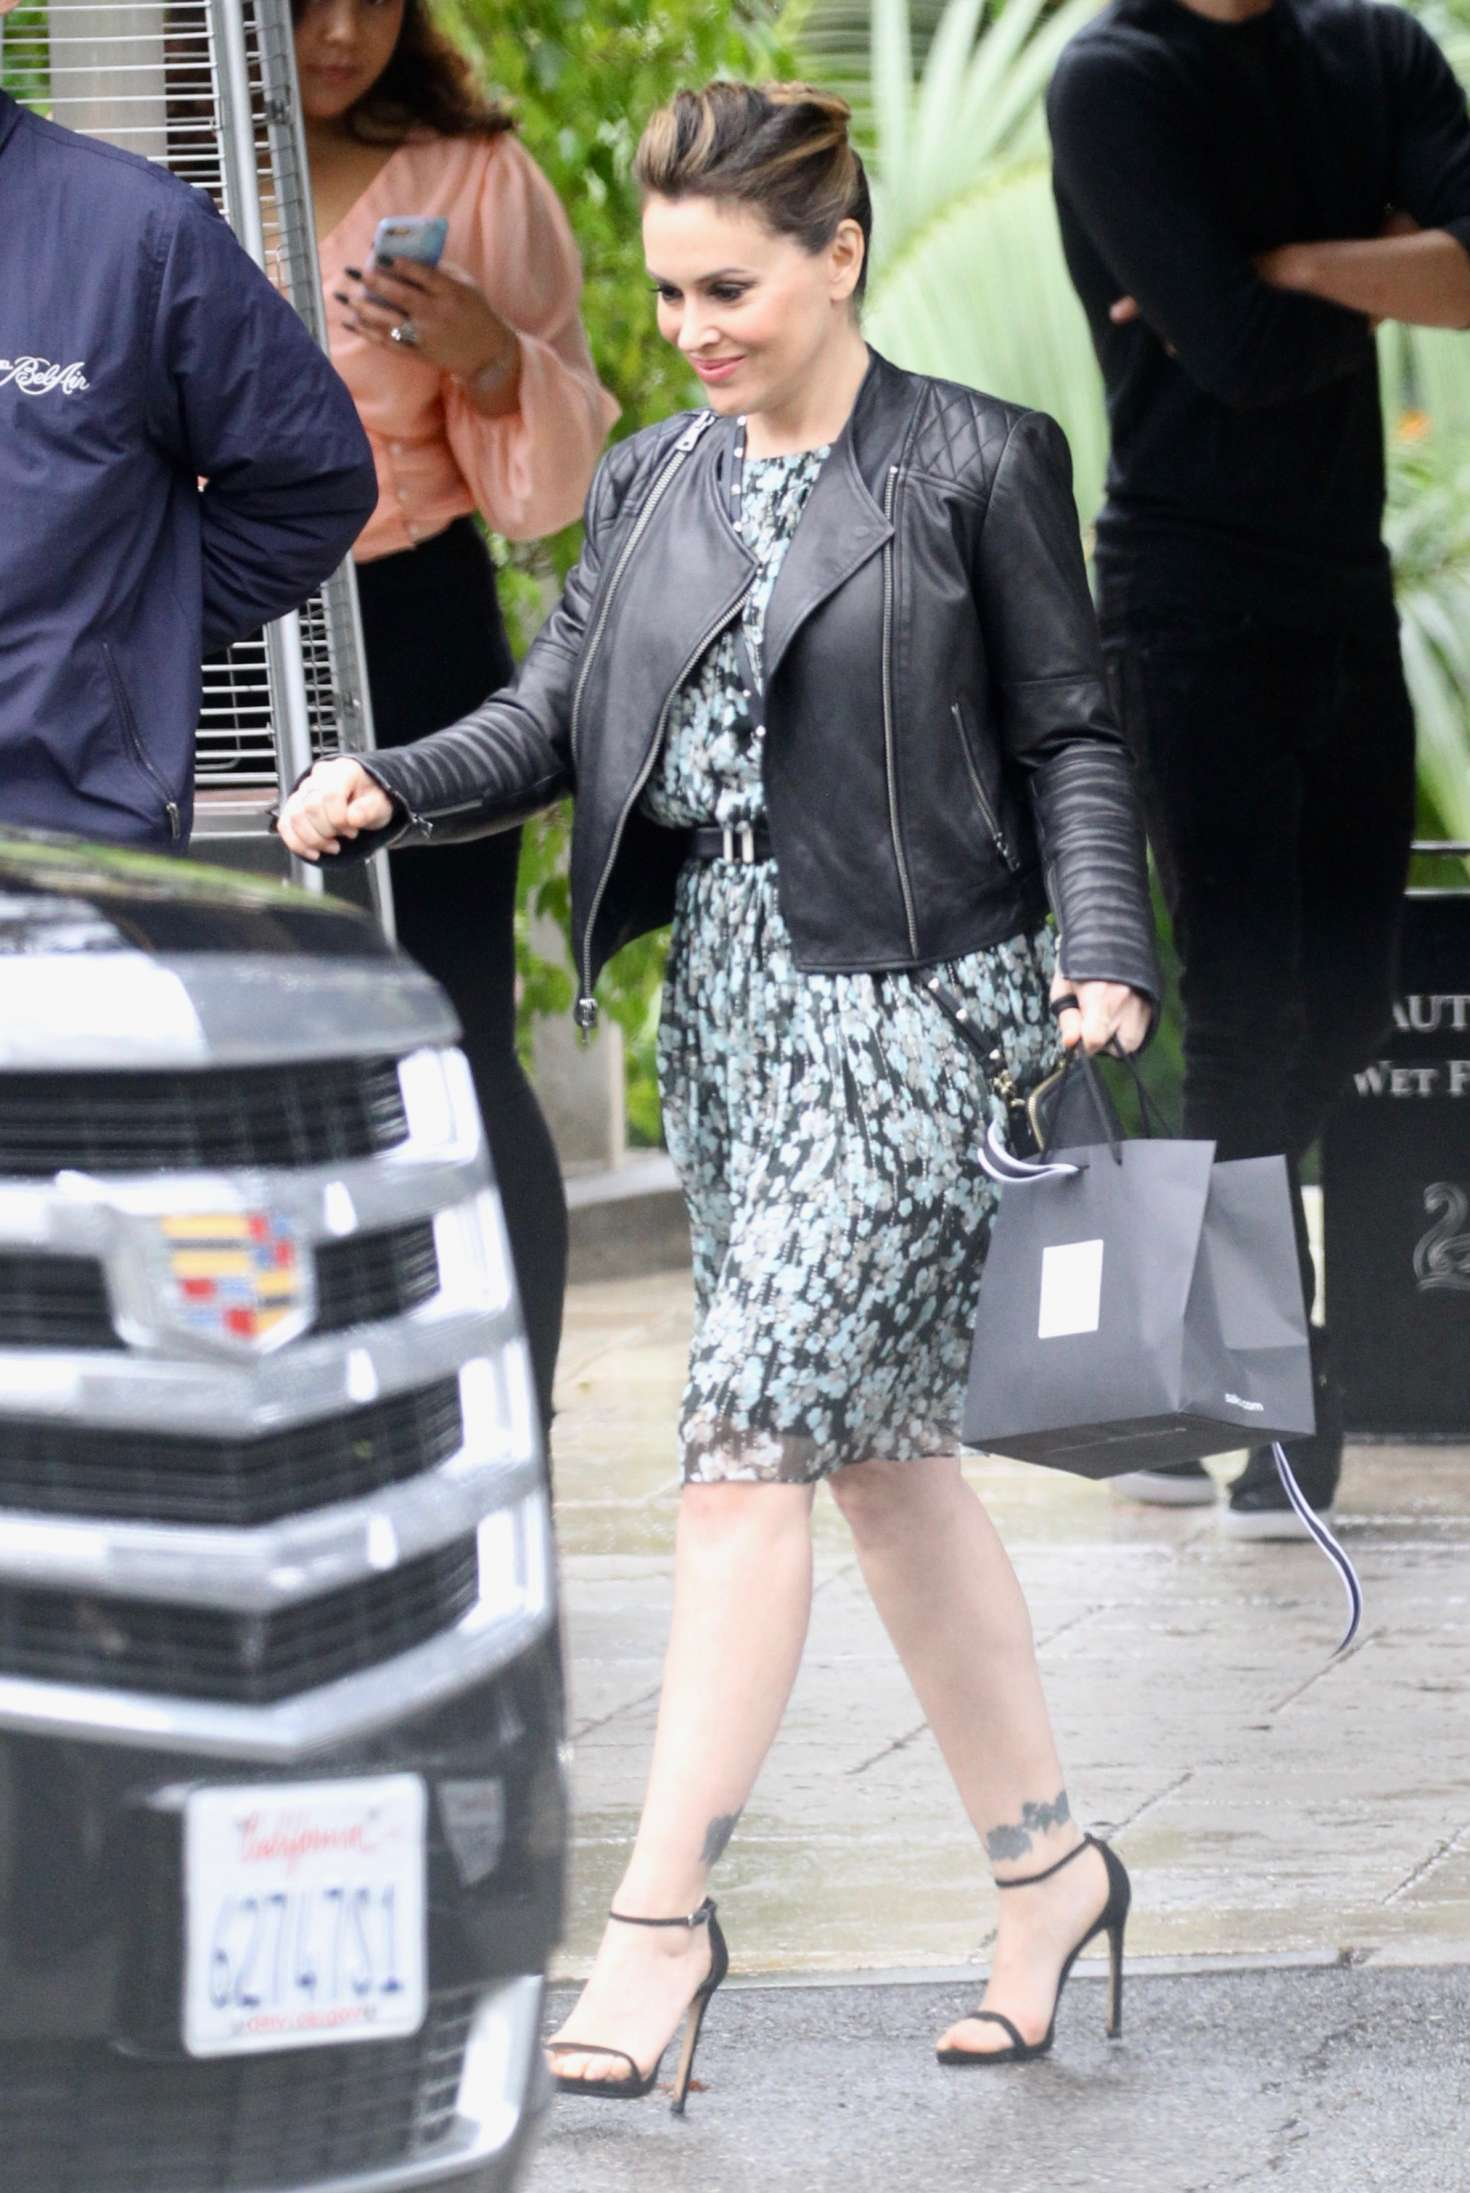 Alyssa Milano - Leaving the Bel Air Hotel in Beverly Hills